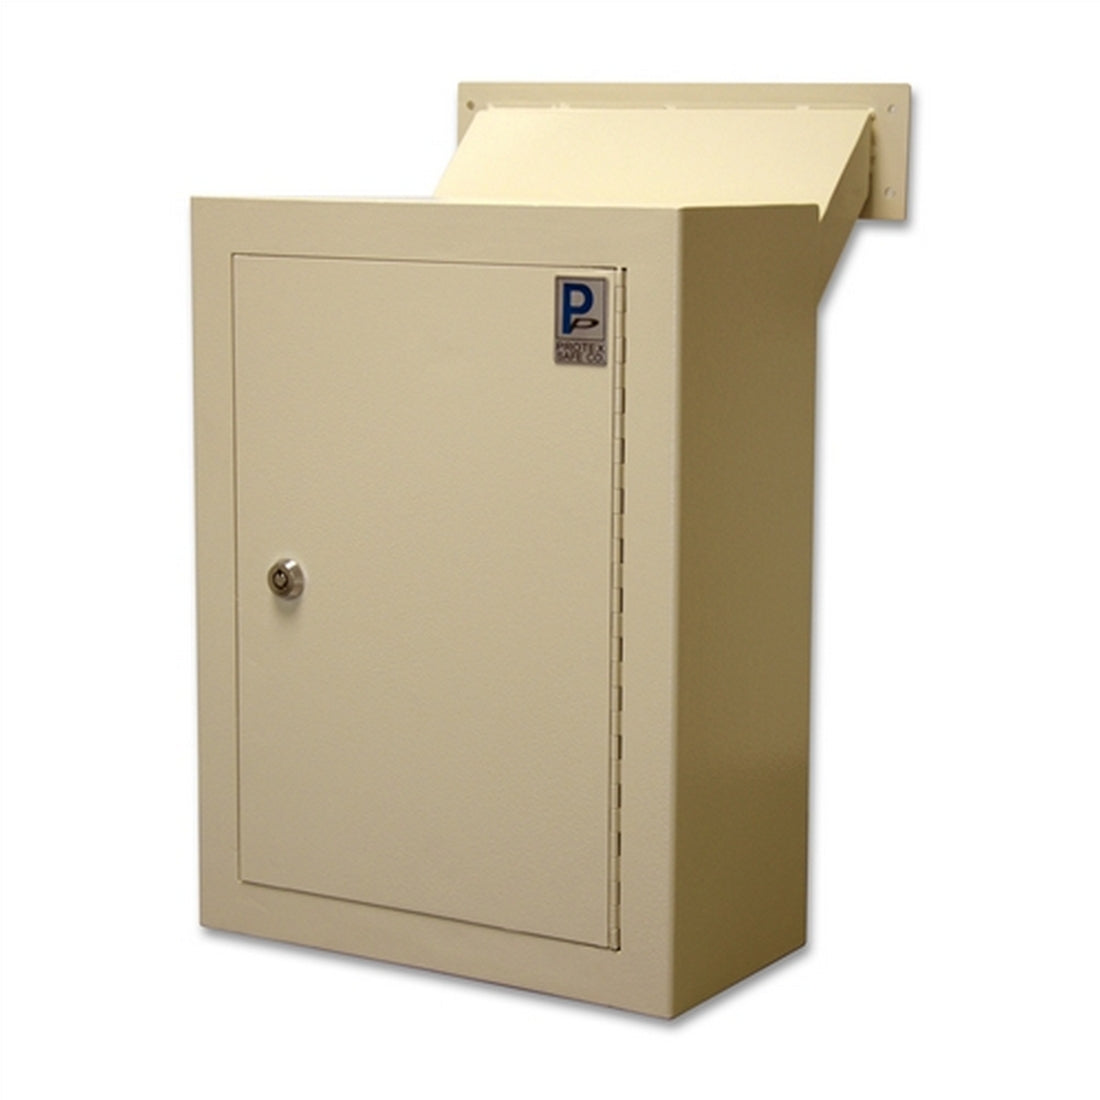 Protex Safe MDL-170 Protex Wall Drop Box w/ Adjustable Chute